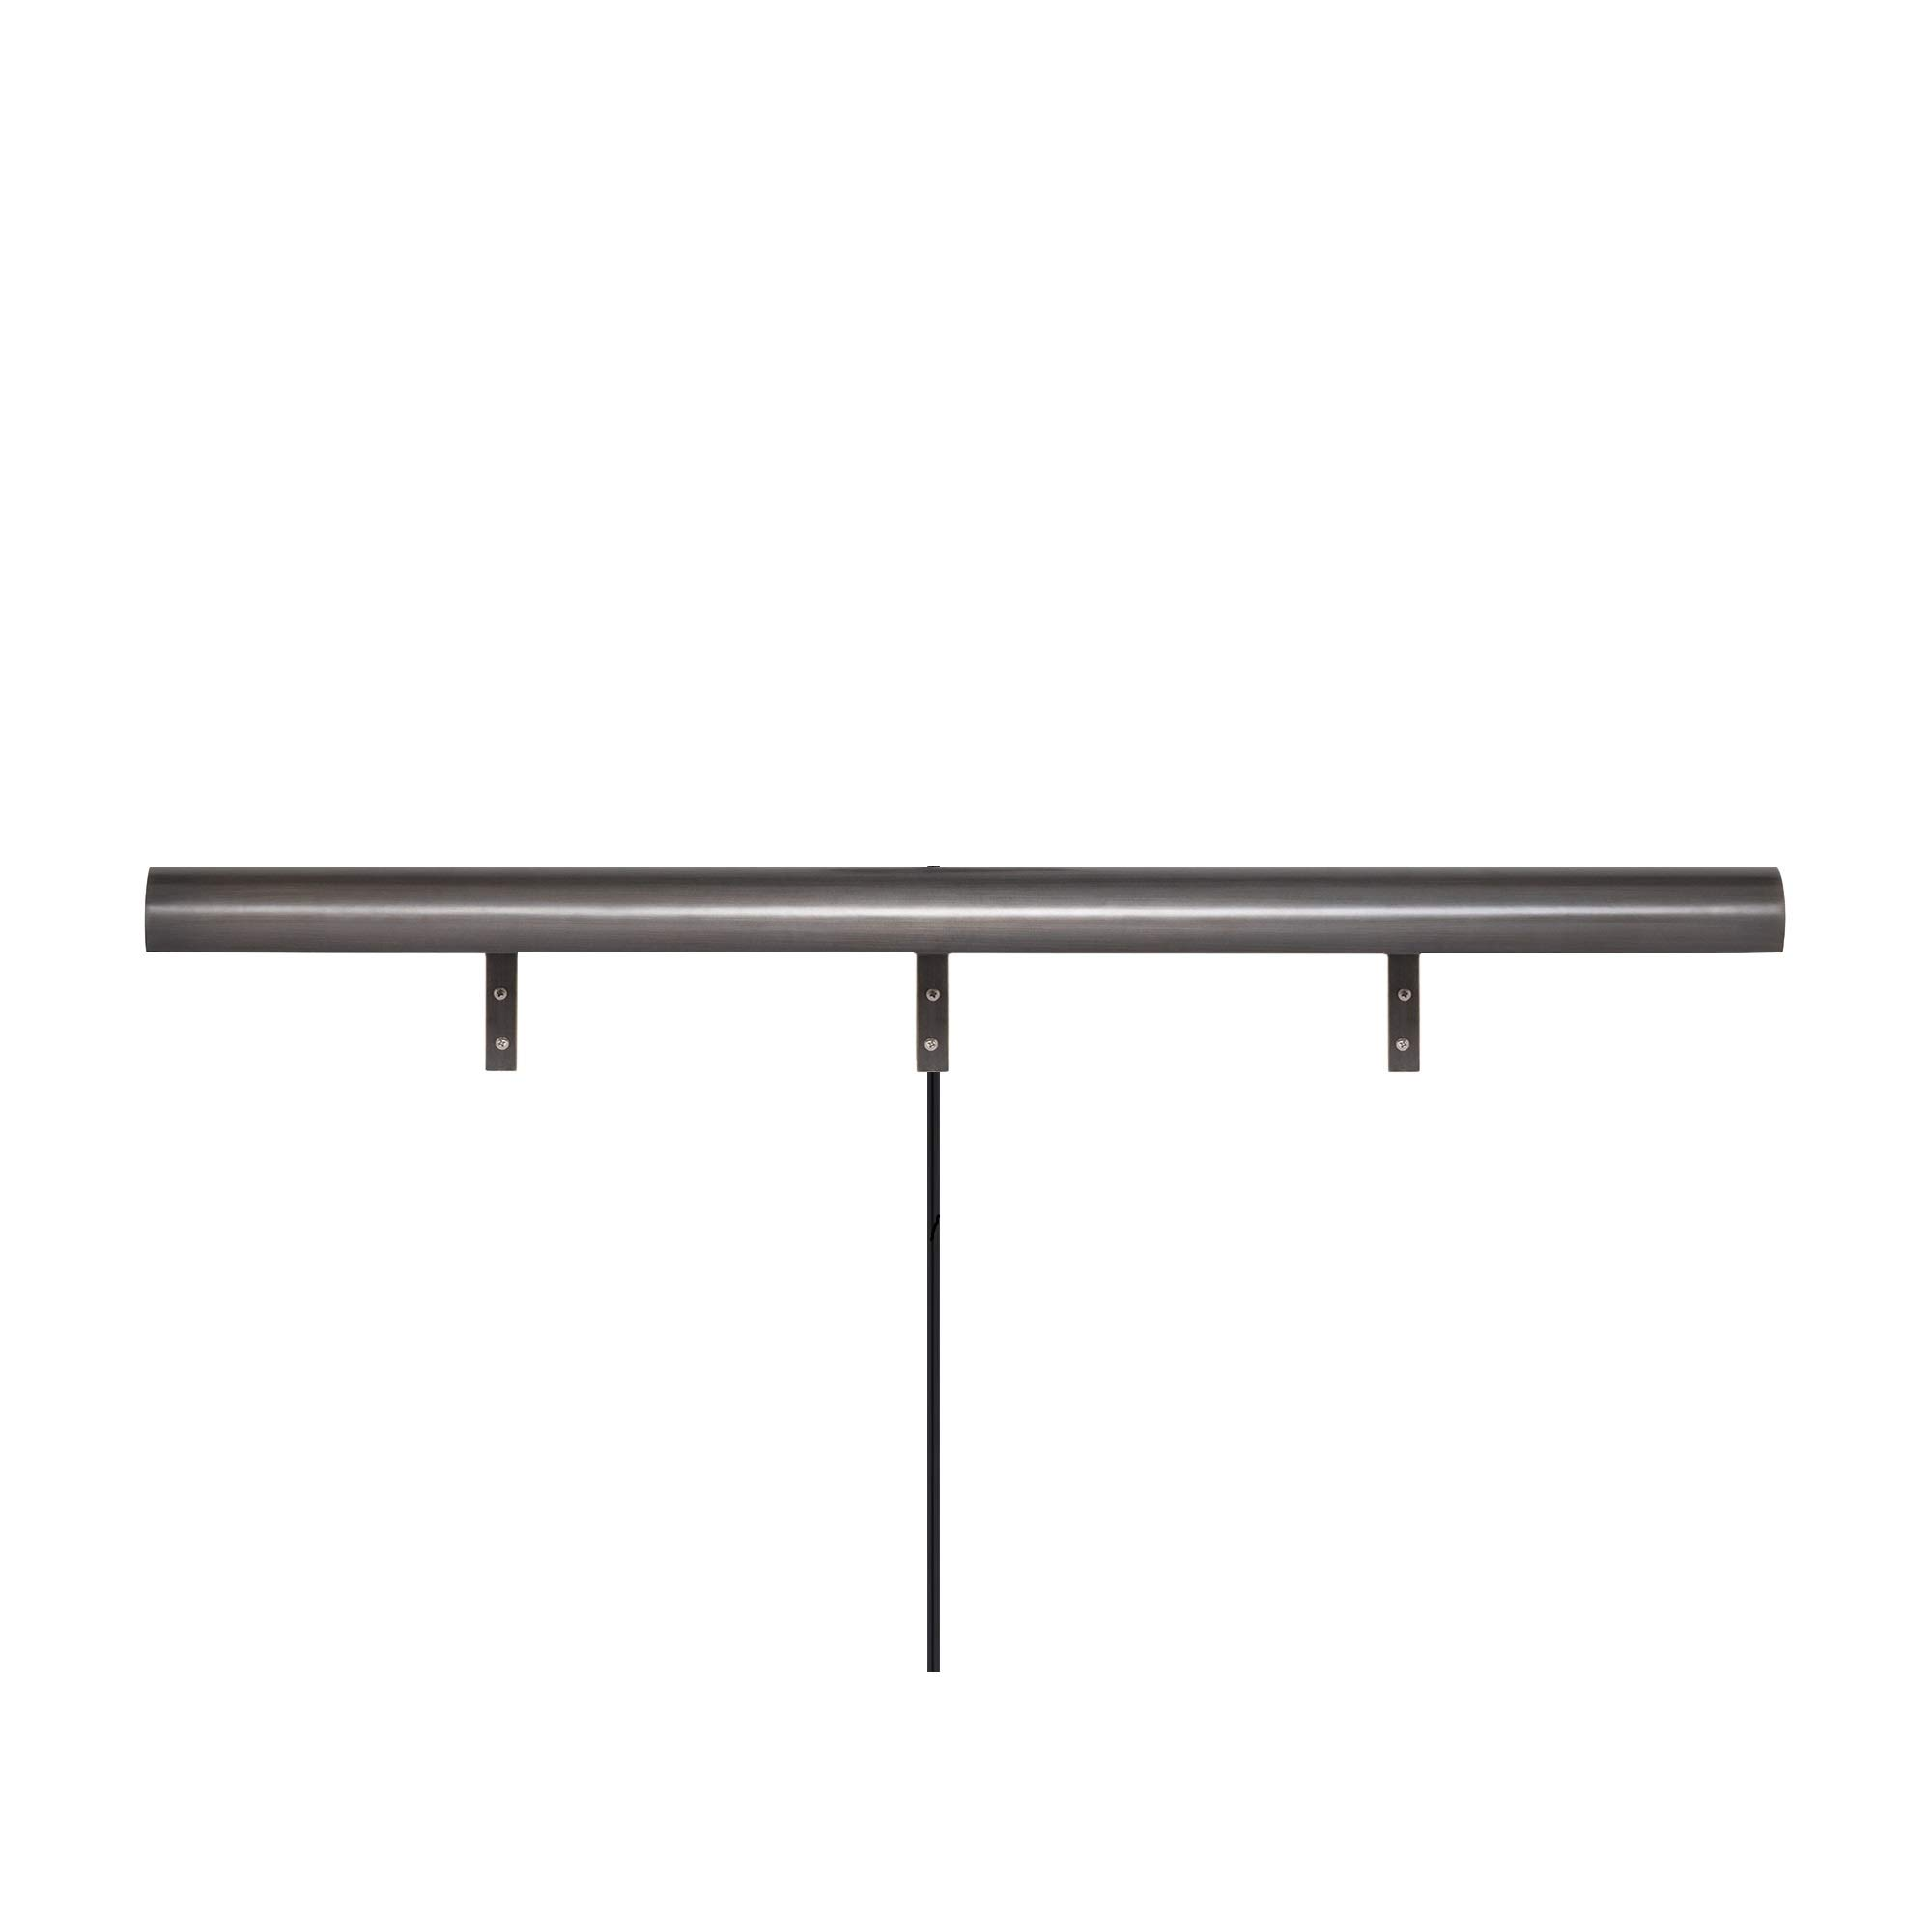 Upgradelights 36 Inch Longer Size Adjustable Plug-in Picture Lamp (Oil Rubbed Bronze)